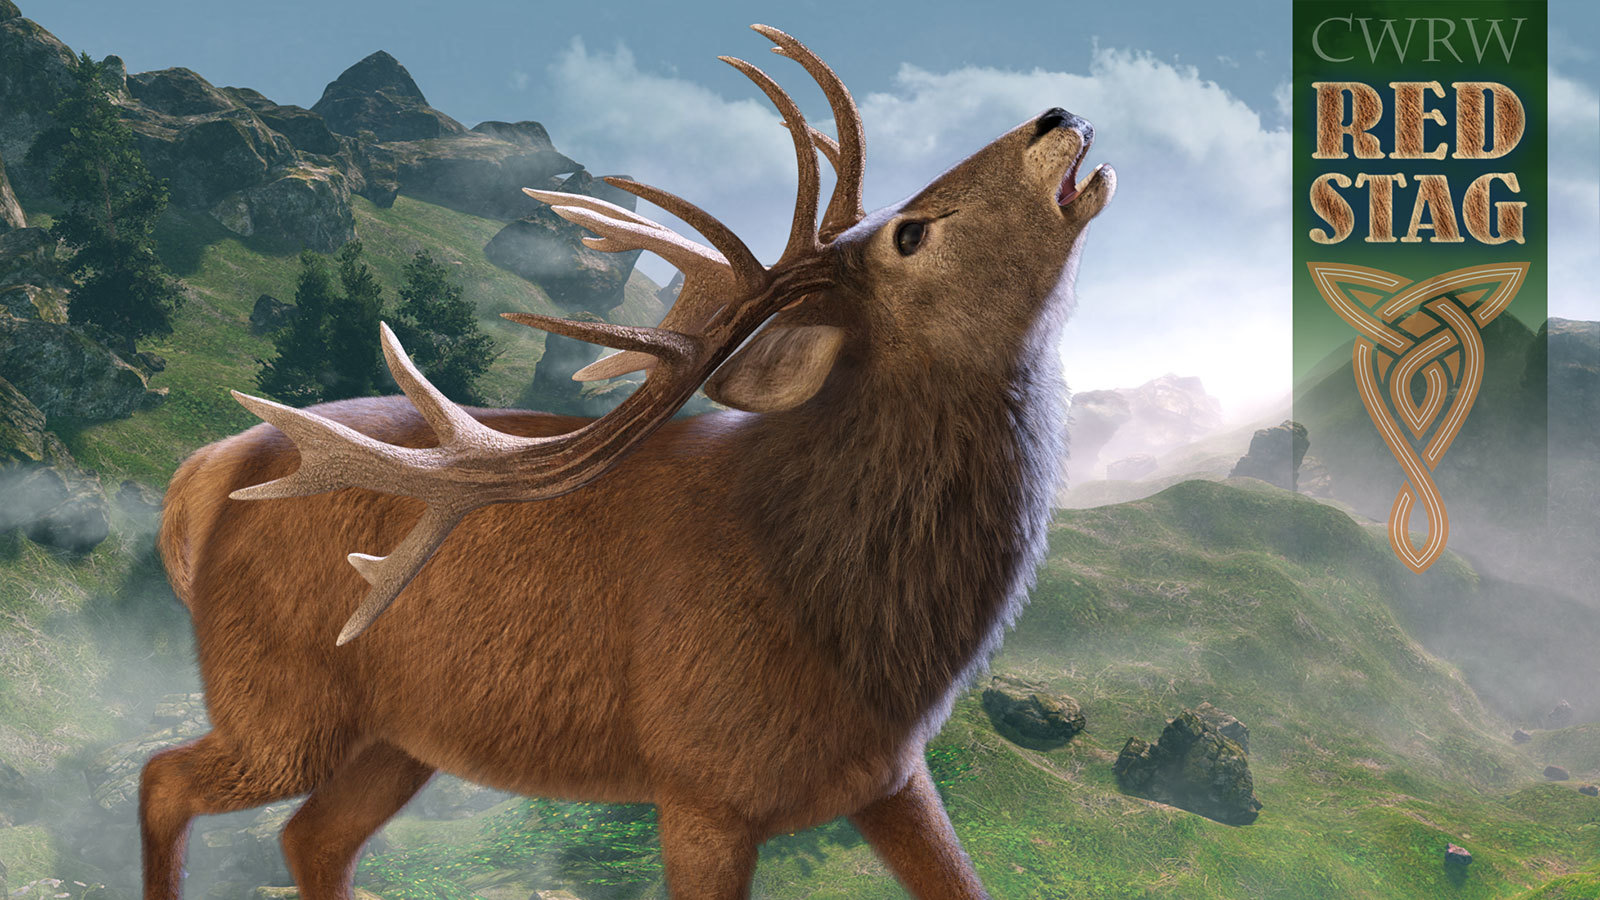 CWRW Red Stag for the HiveWire Mule Deer by cwrw